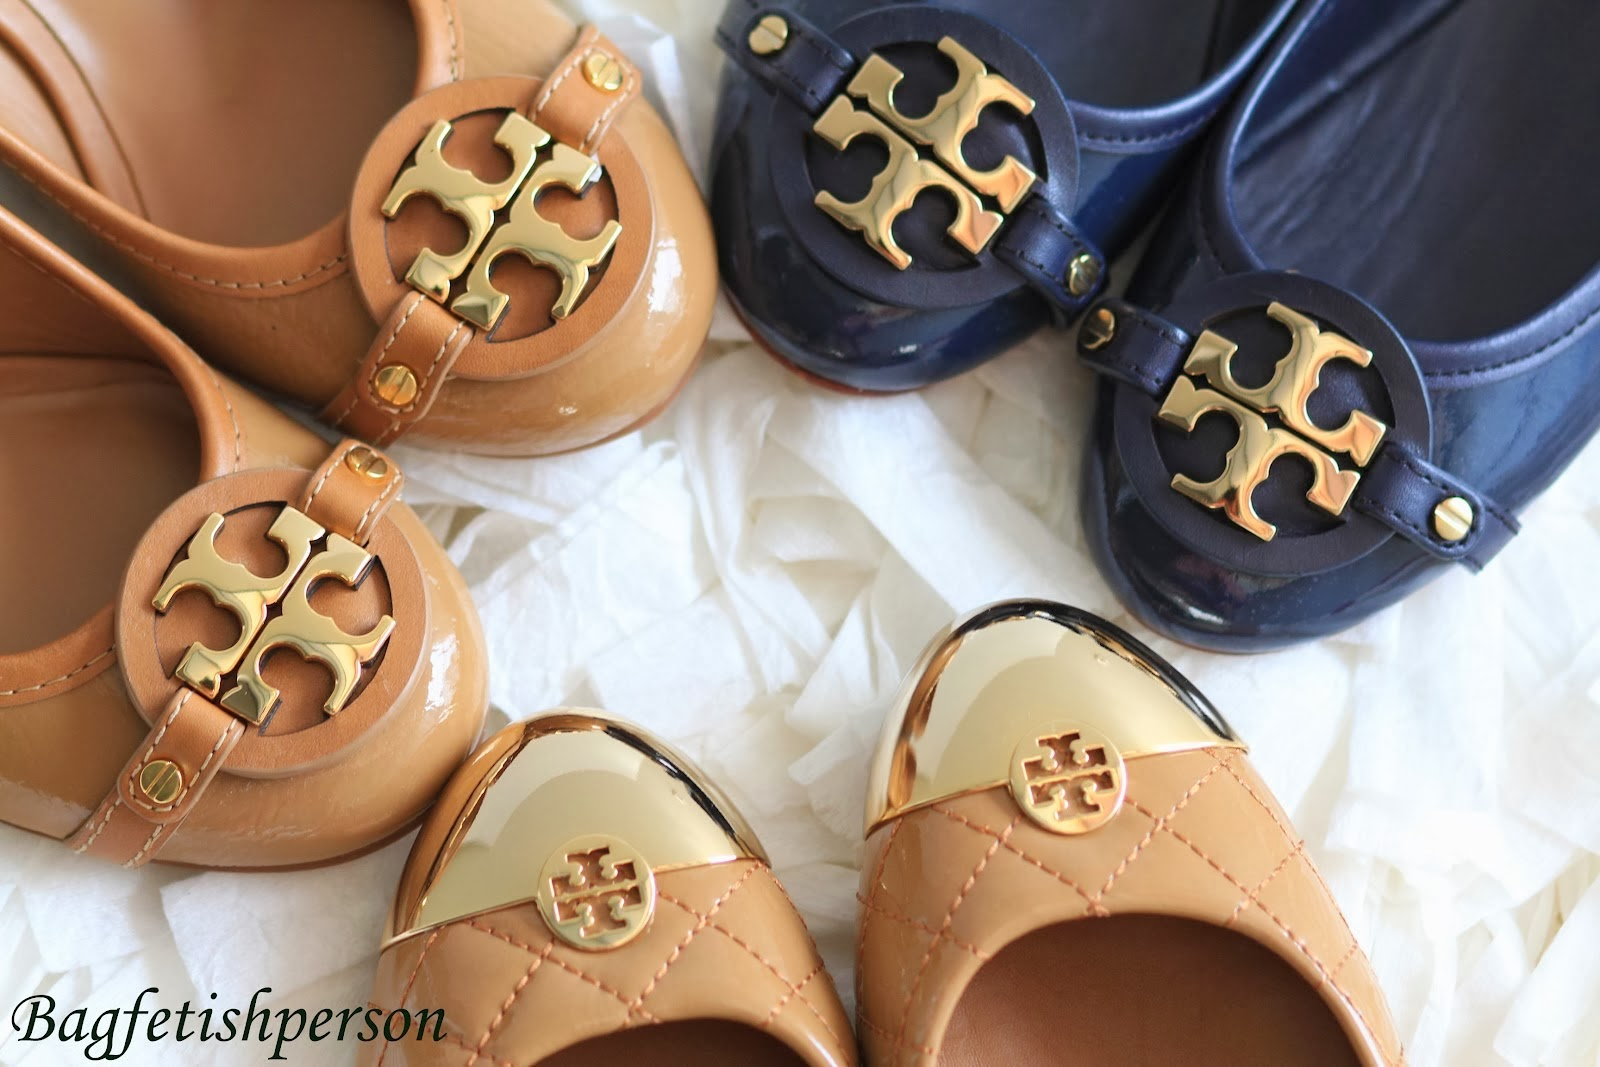 Amazing Tory Burch Shoes, Different style shoes, Leather Shoes